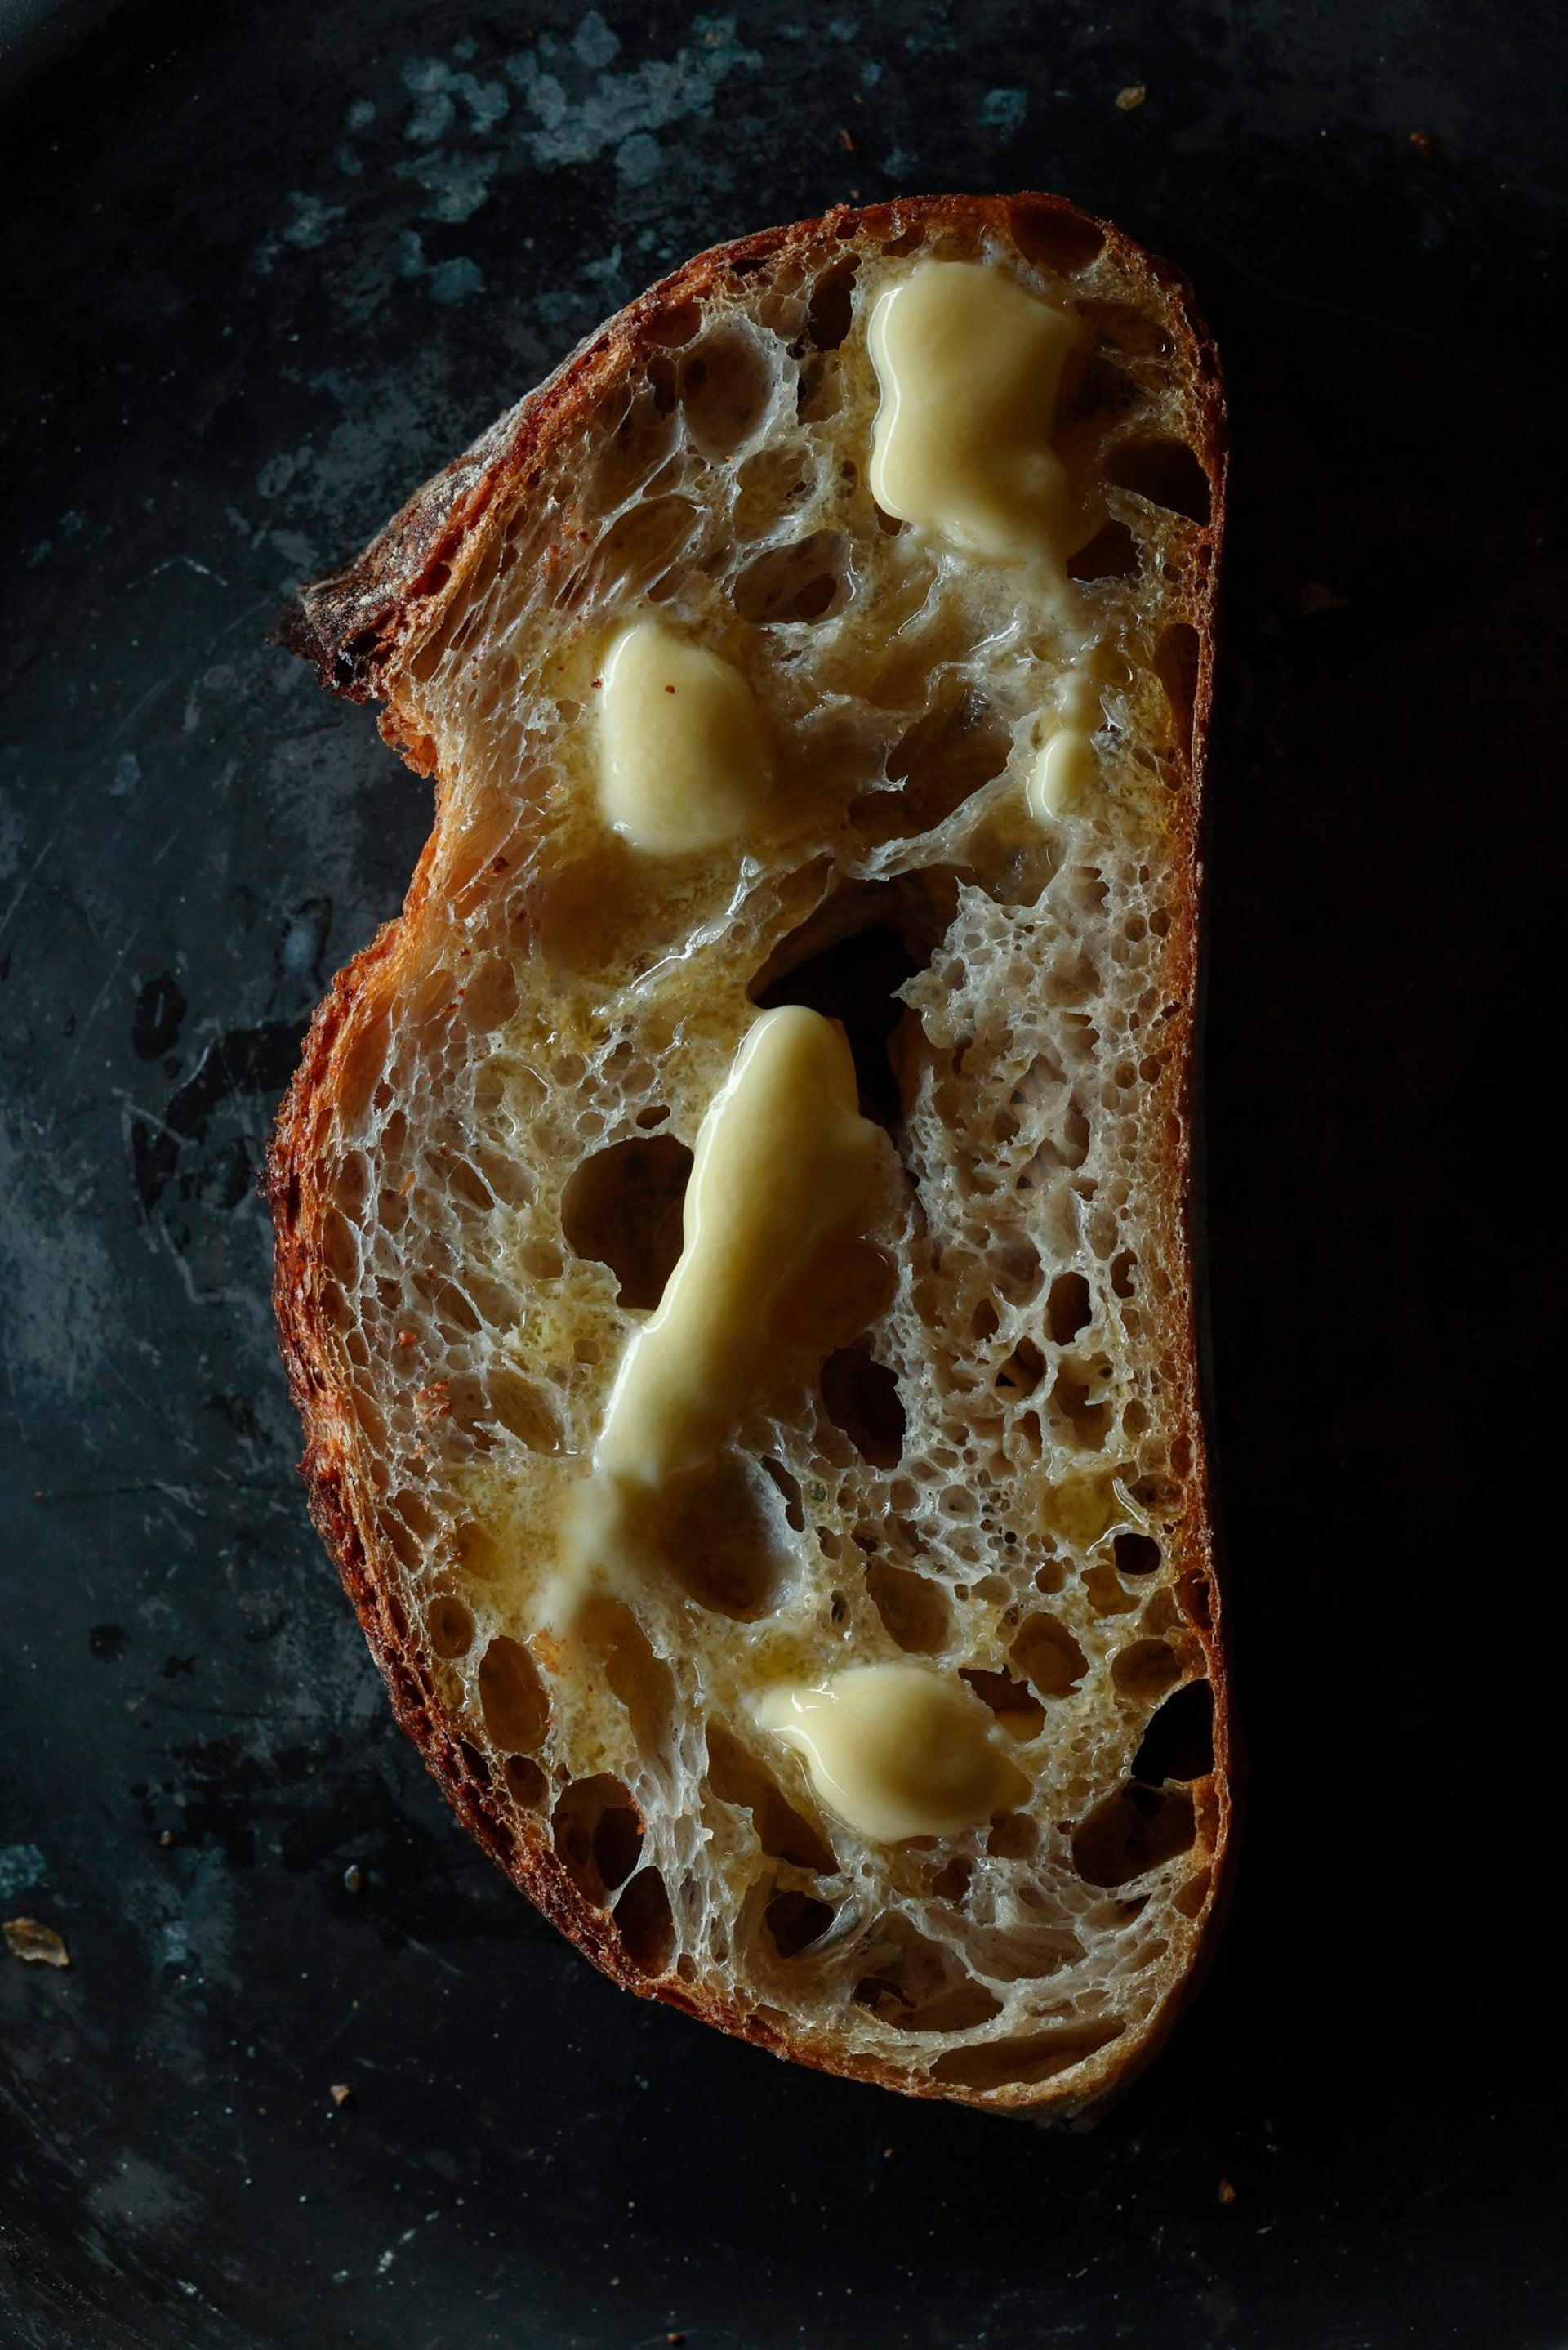 A fresh slice of bread with butter.